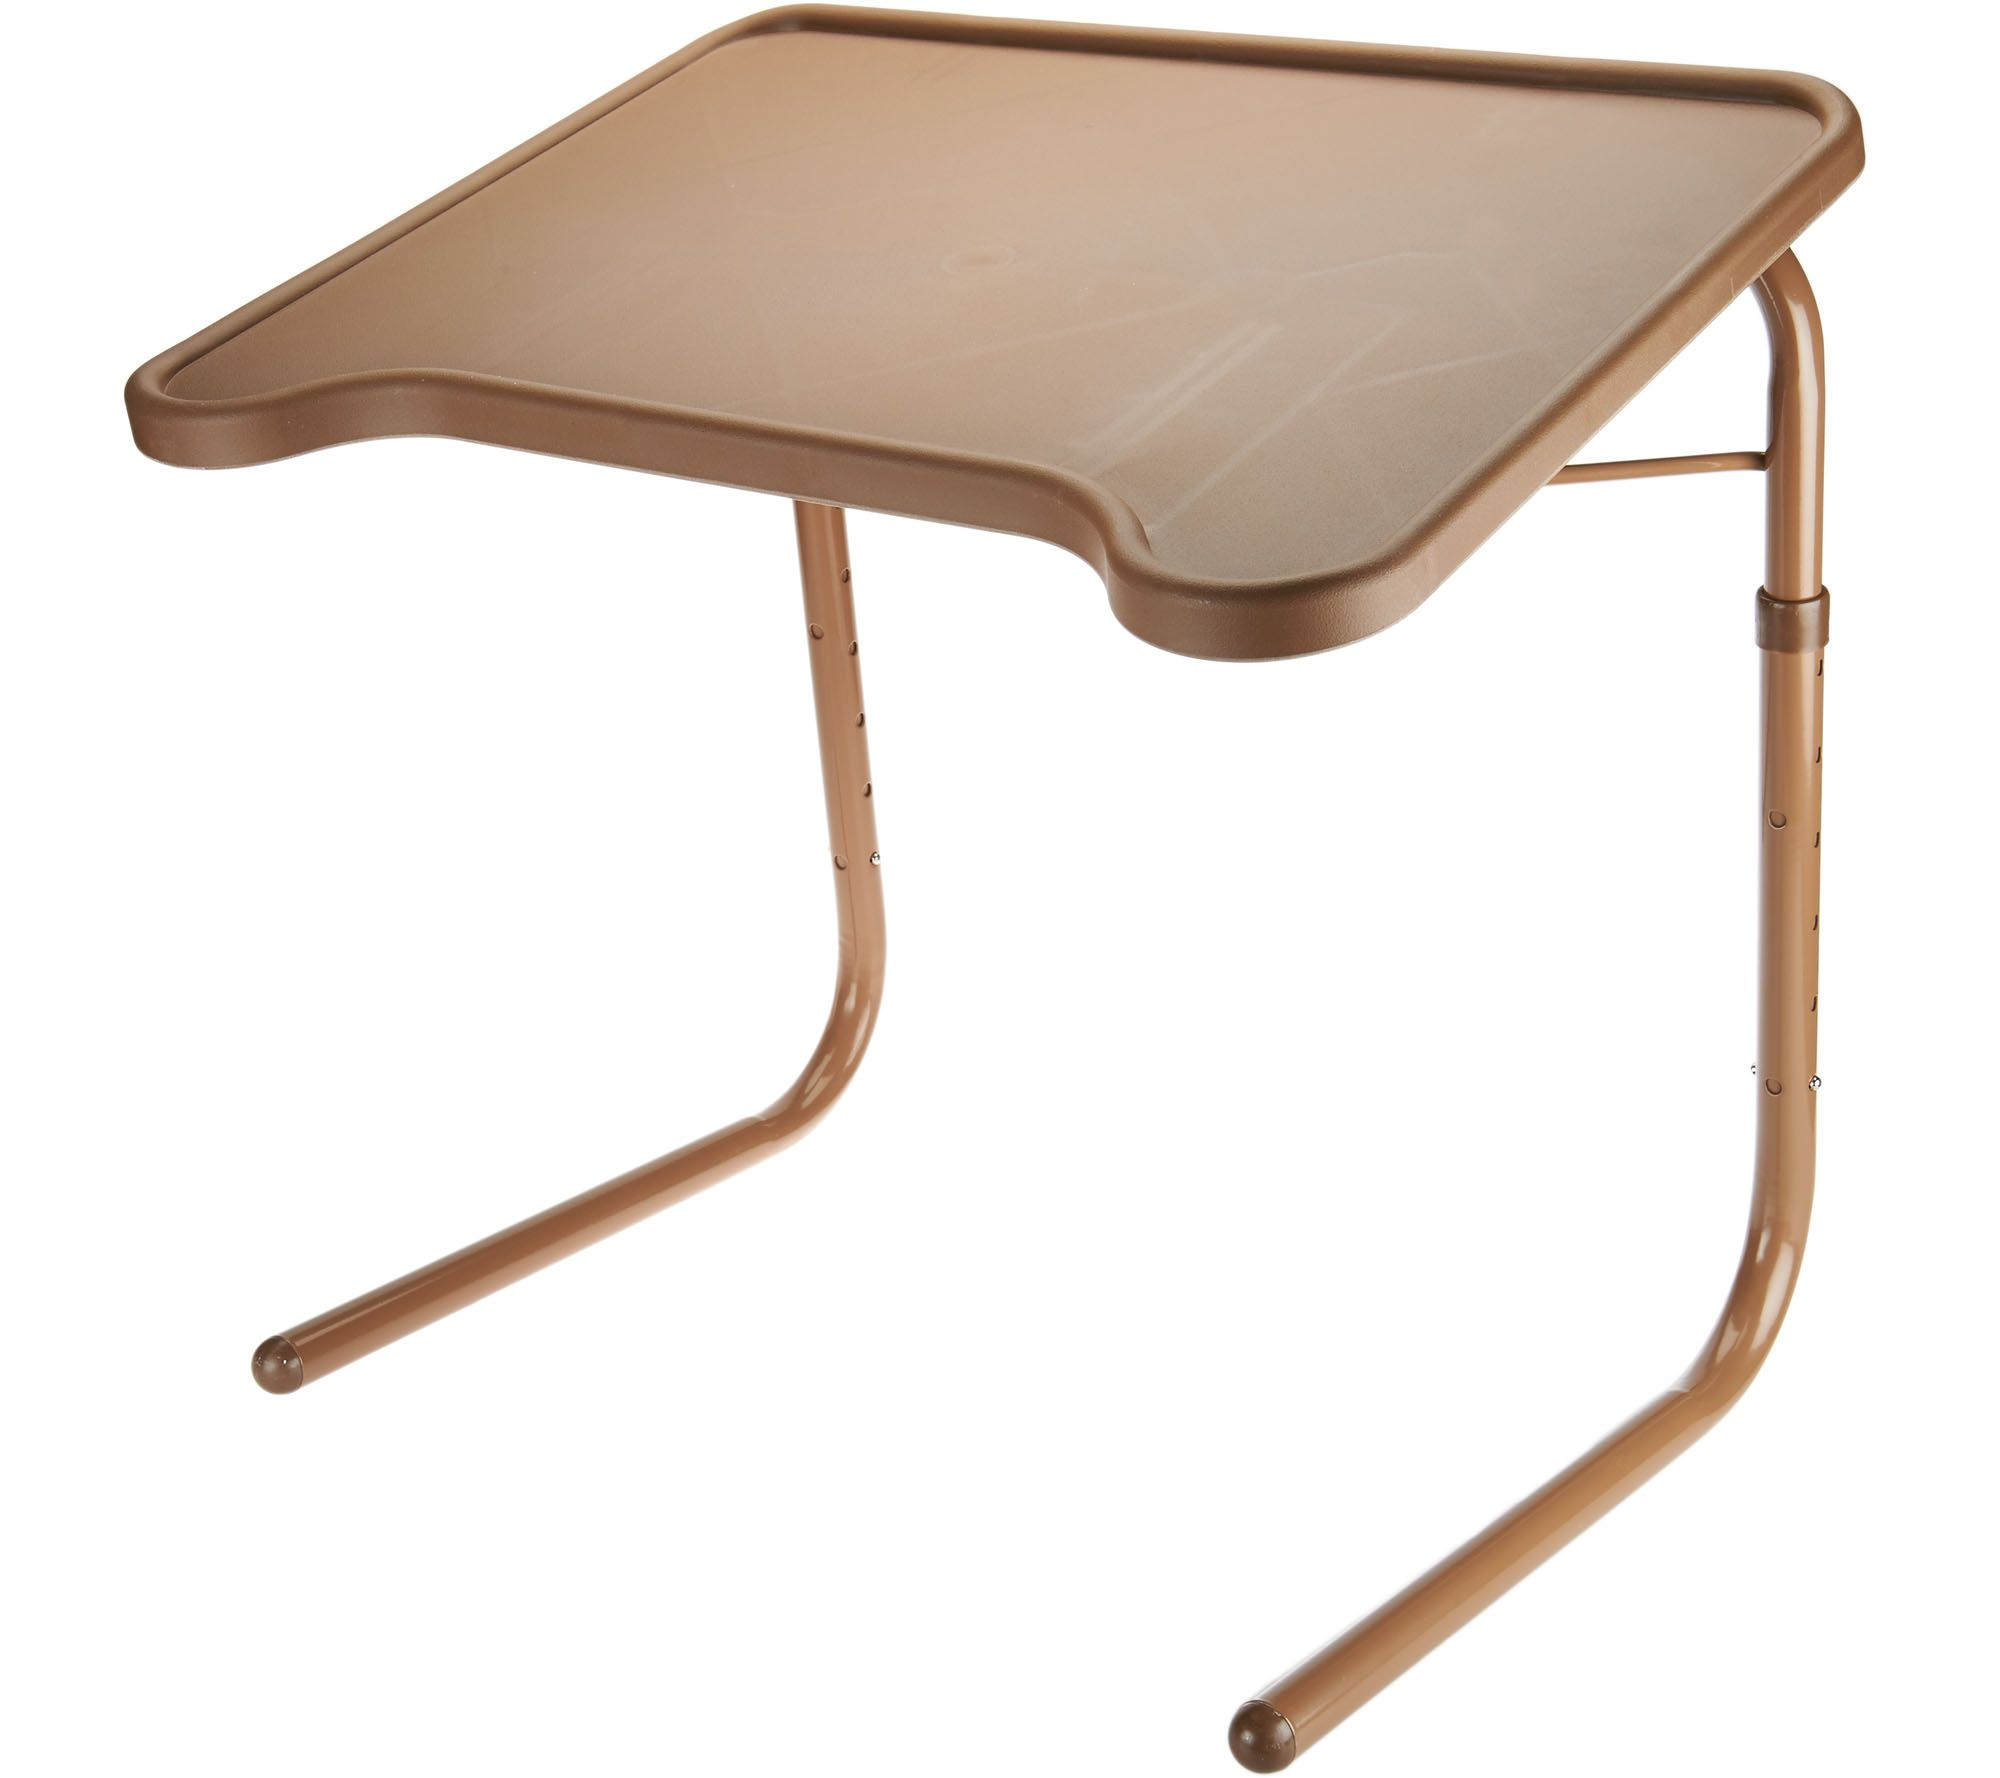 Genial Table Mate Classic Multipurpose Adjustable Folding Table   Page 1 U2014 QVC.com